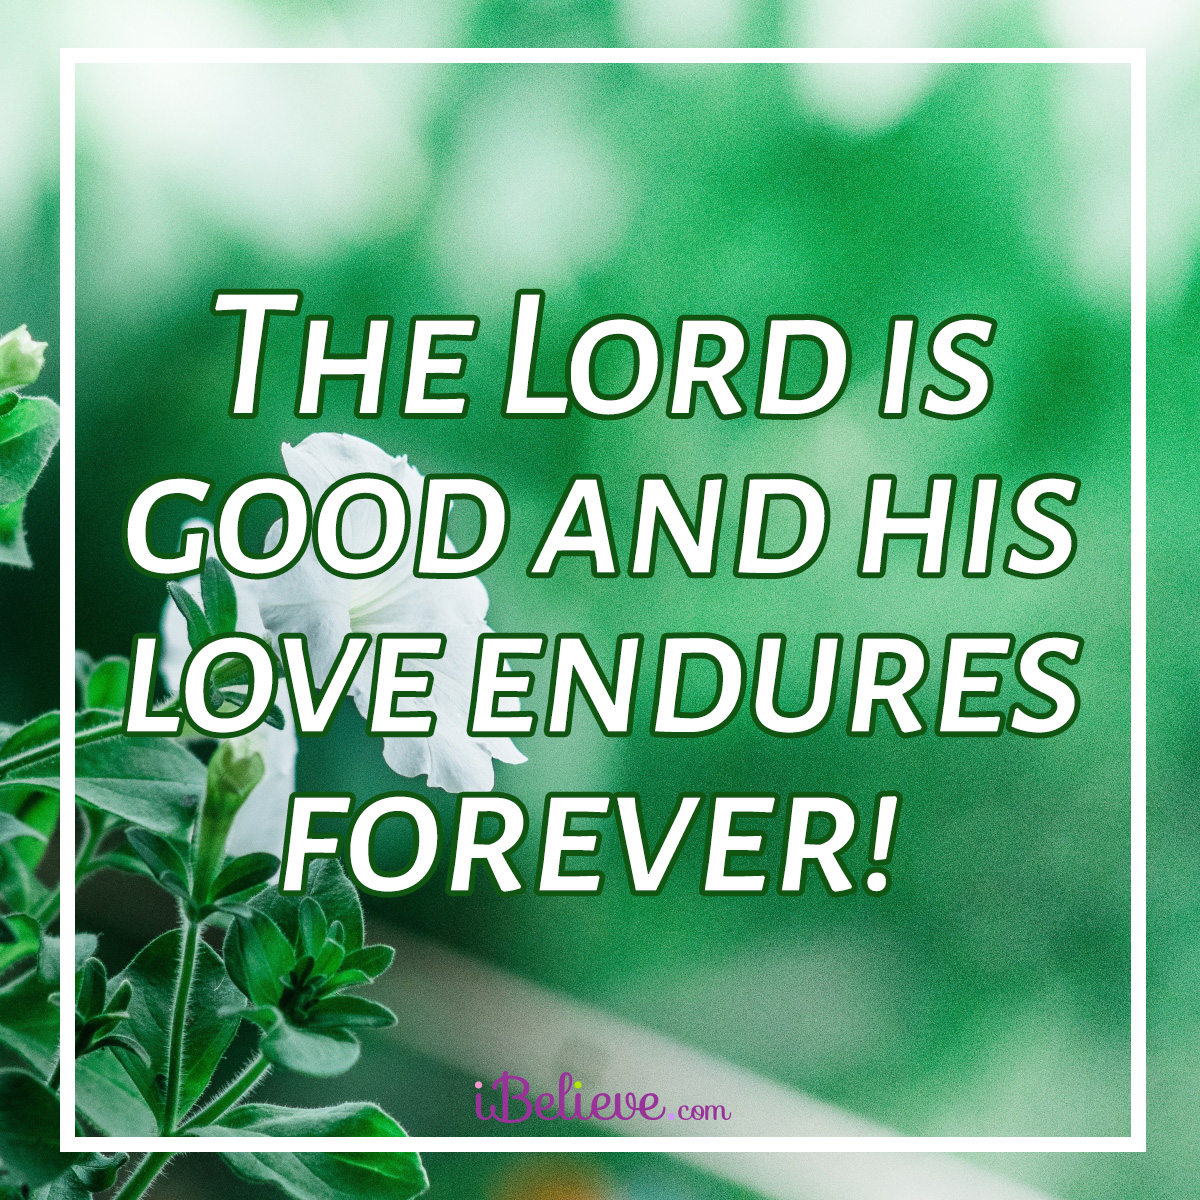 his love endures forever square